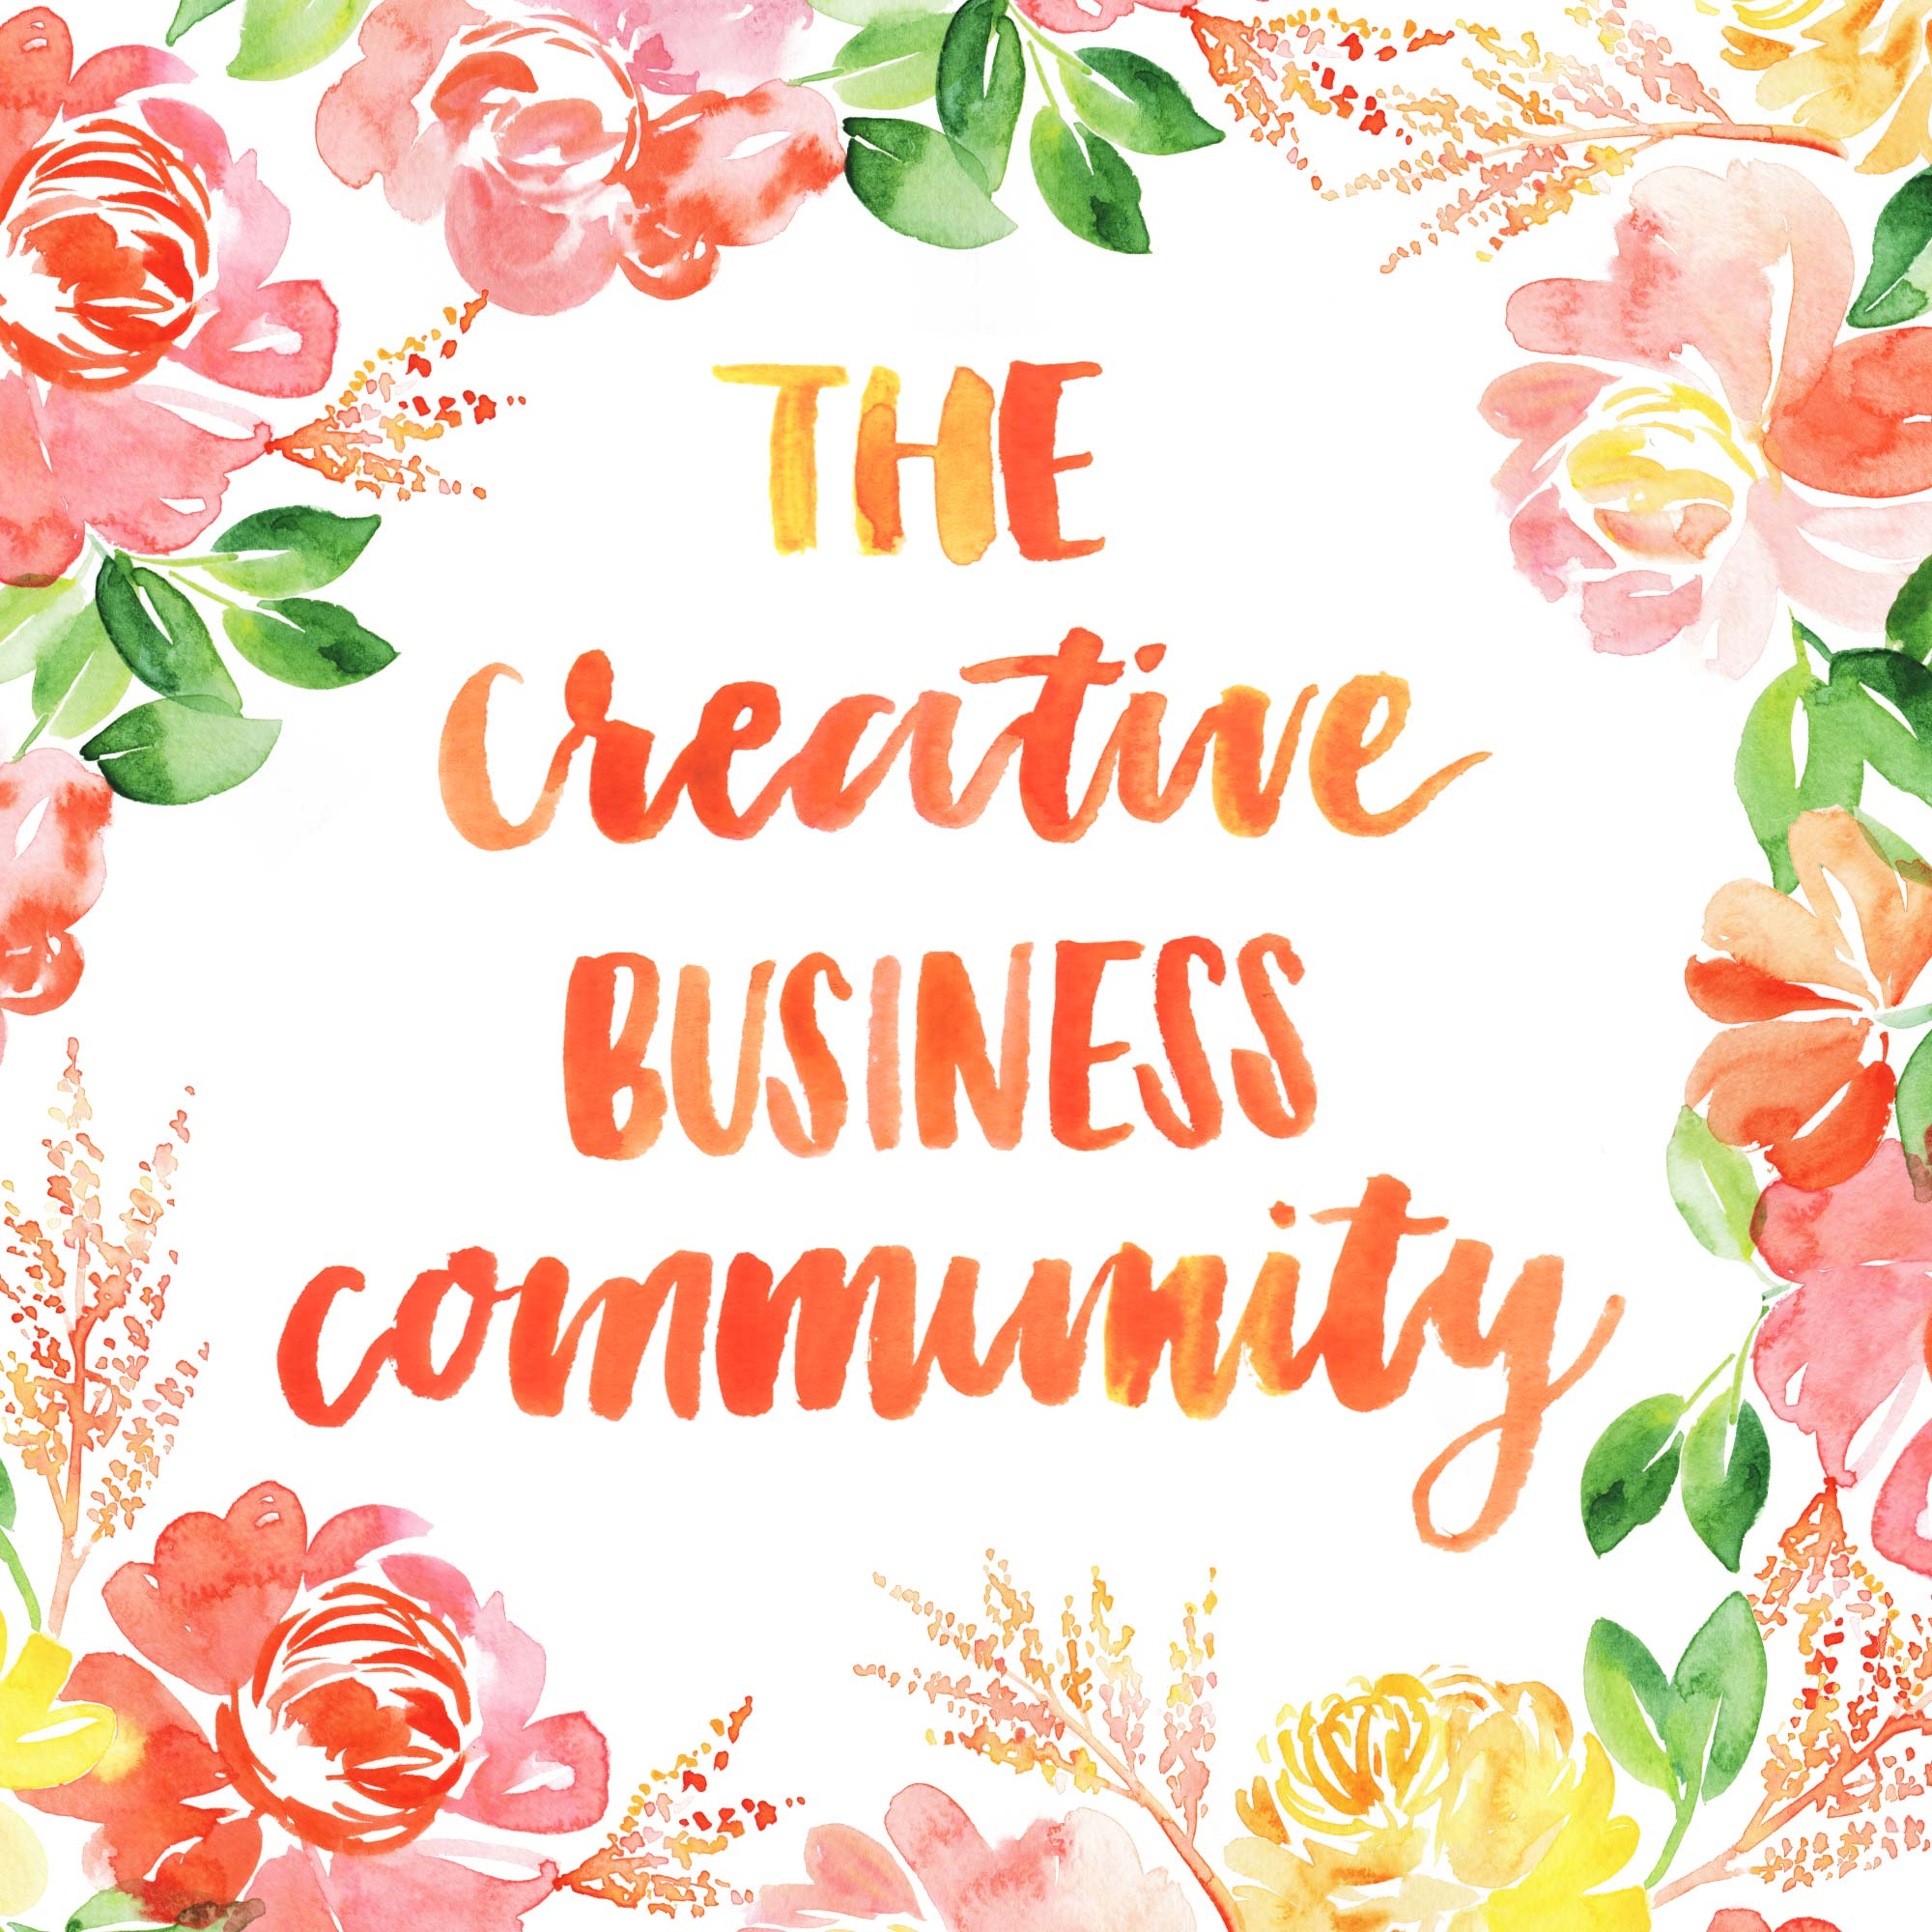 Join the Free Facebook Group by Heartmade: The Creative Business Community